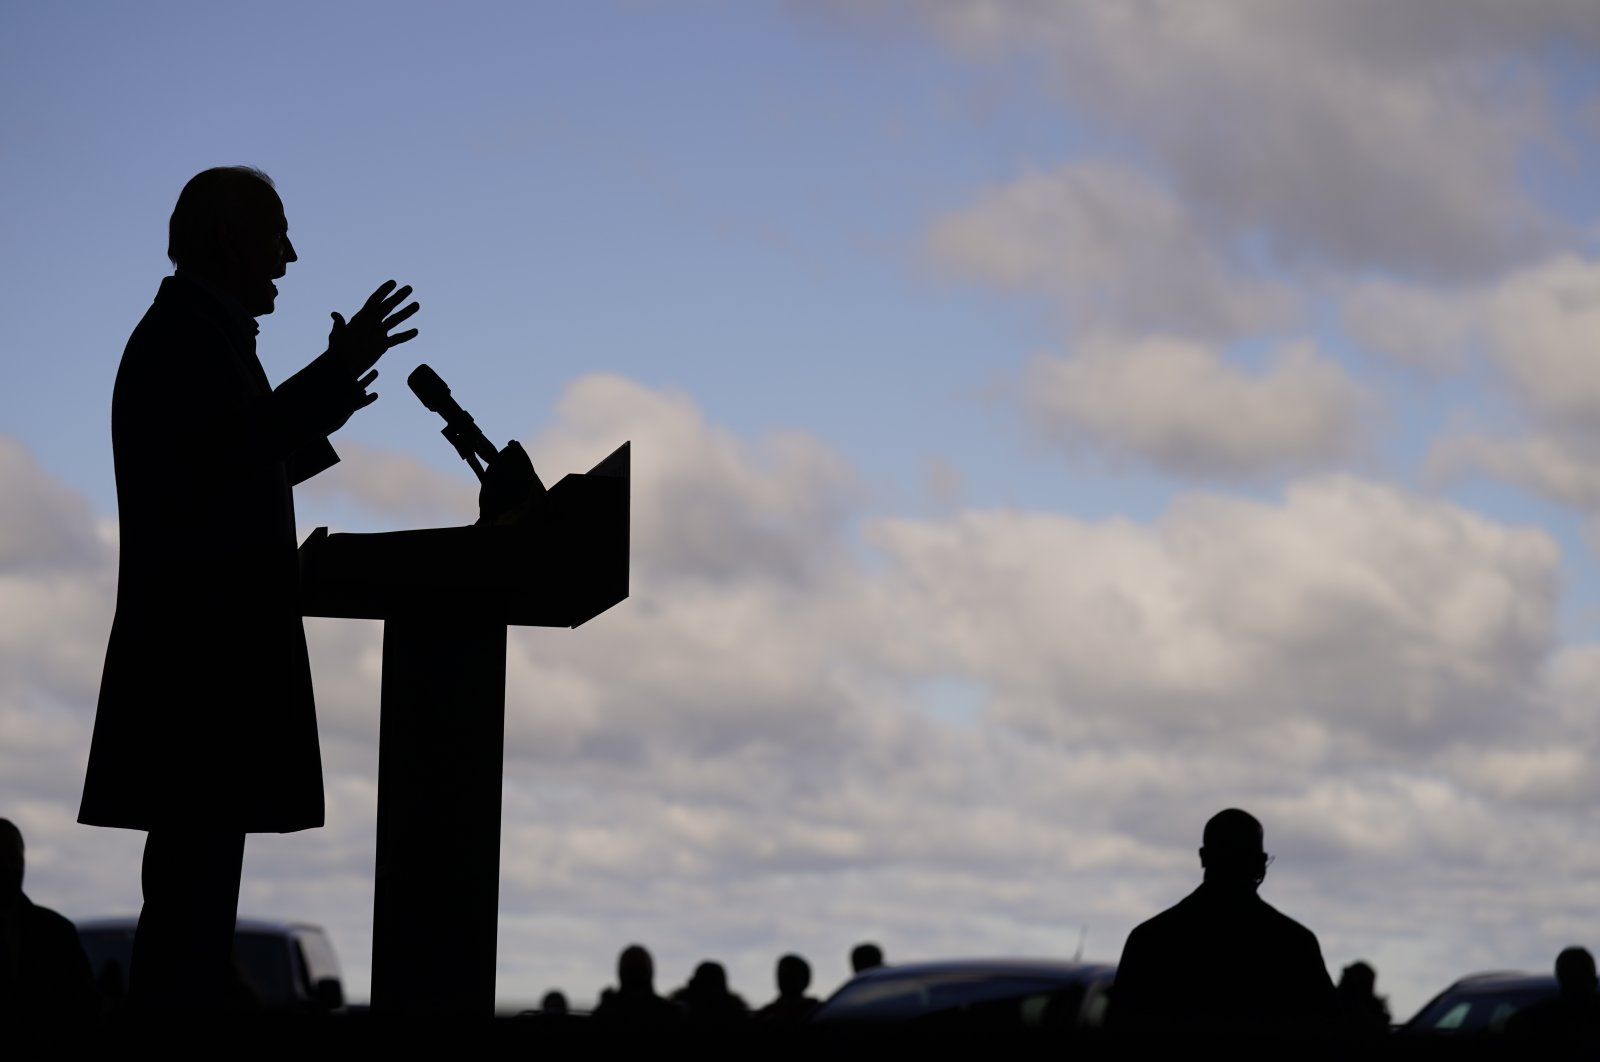 Democratic candidate Joe Biden speaks at a rally a day before U.S. presidential elections, at Cleveland Burke Lakefront Airport, in Cleveland, Ohio, Nov. 2, 2020. (AP Photo)